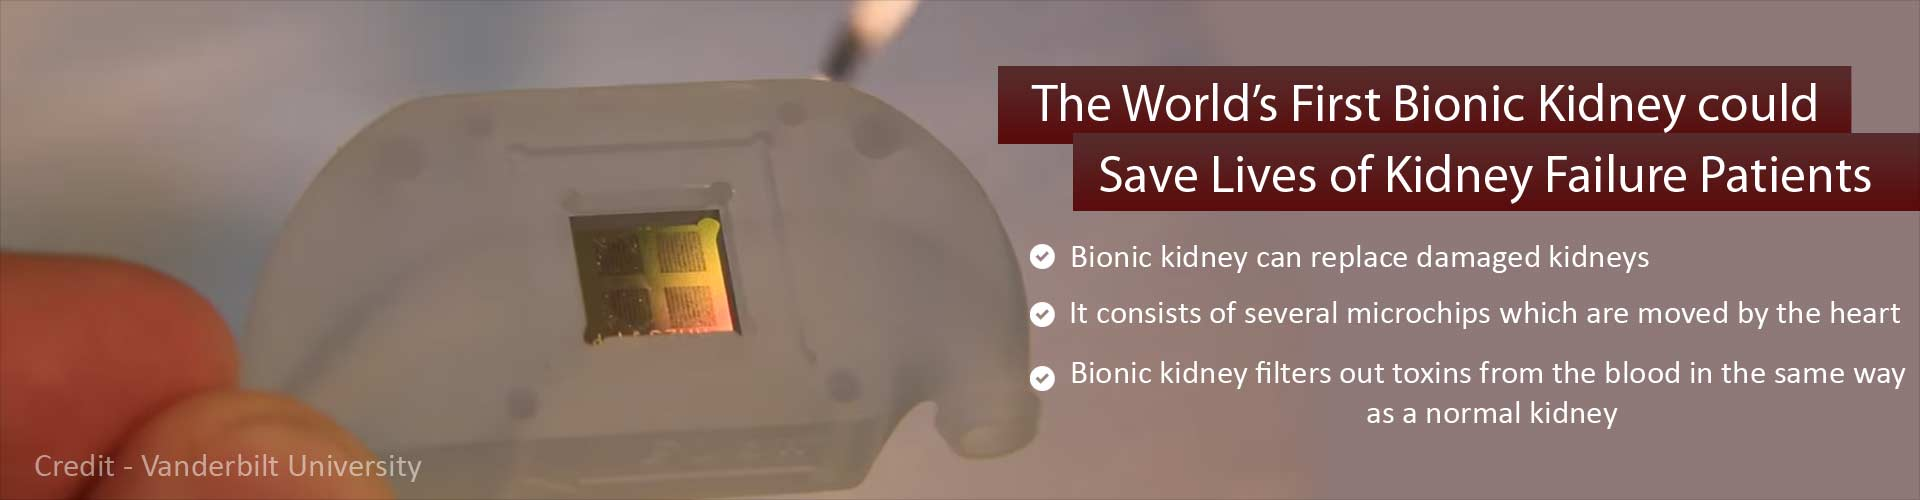 The World's First Bionic Kidney could save lives of kidney failure patients